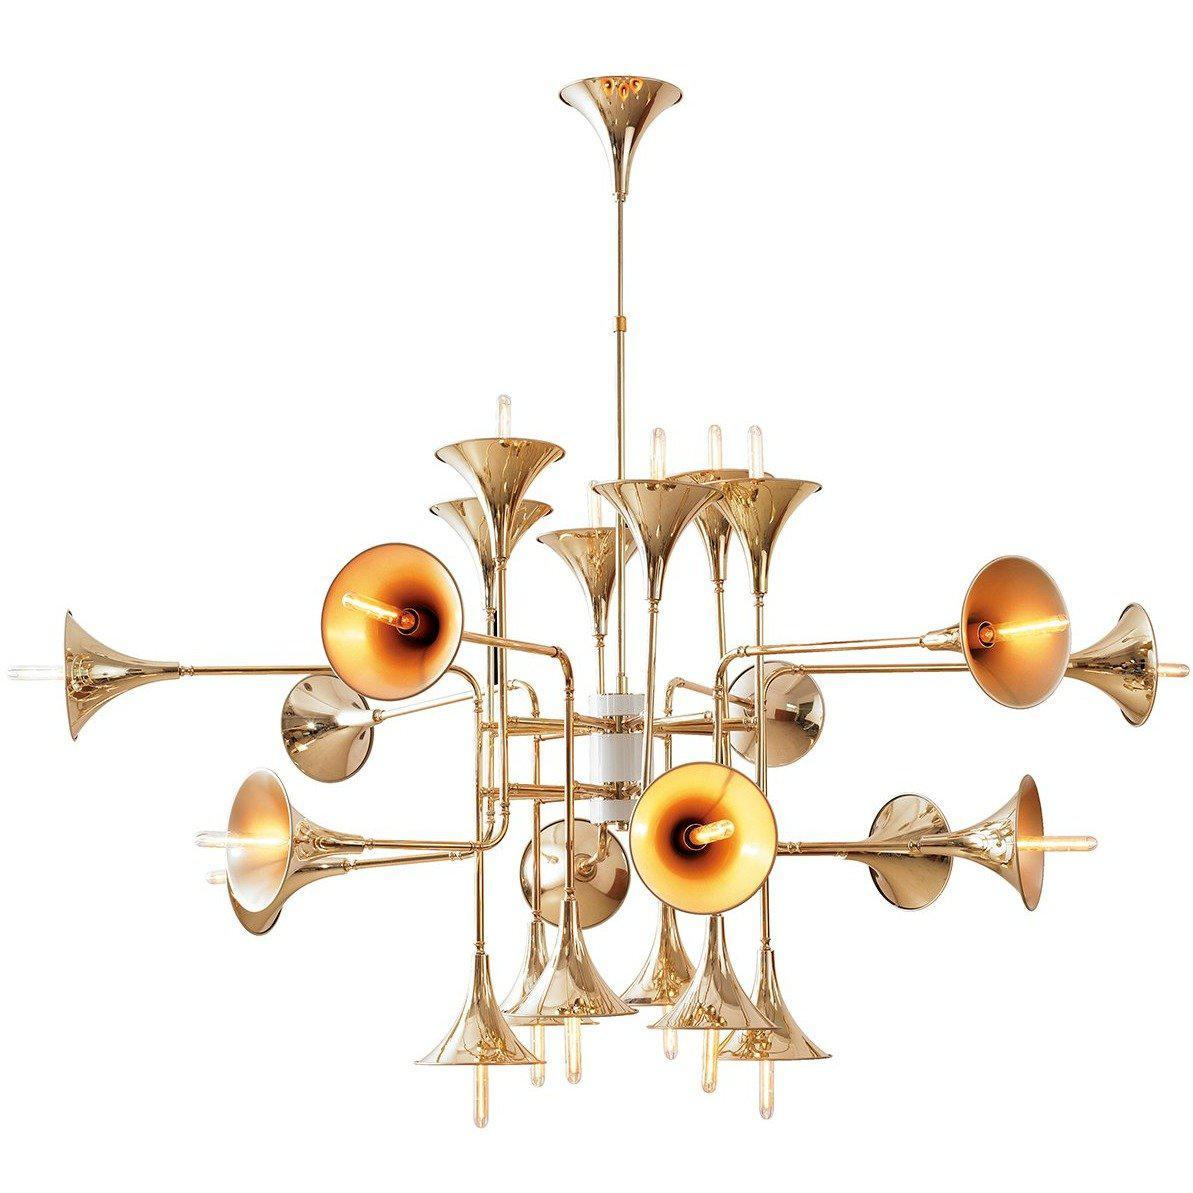 [LM35624PGOLD] The Trumpet Chandelier